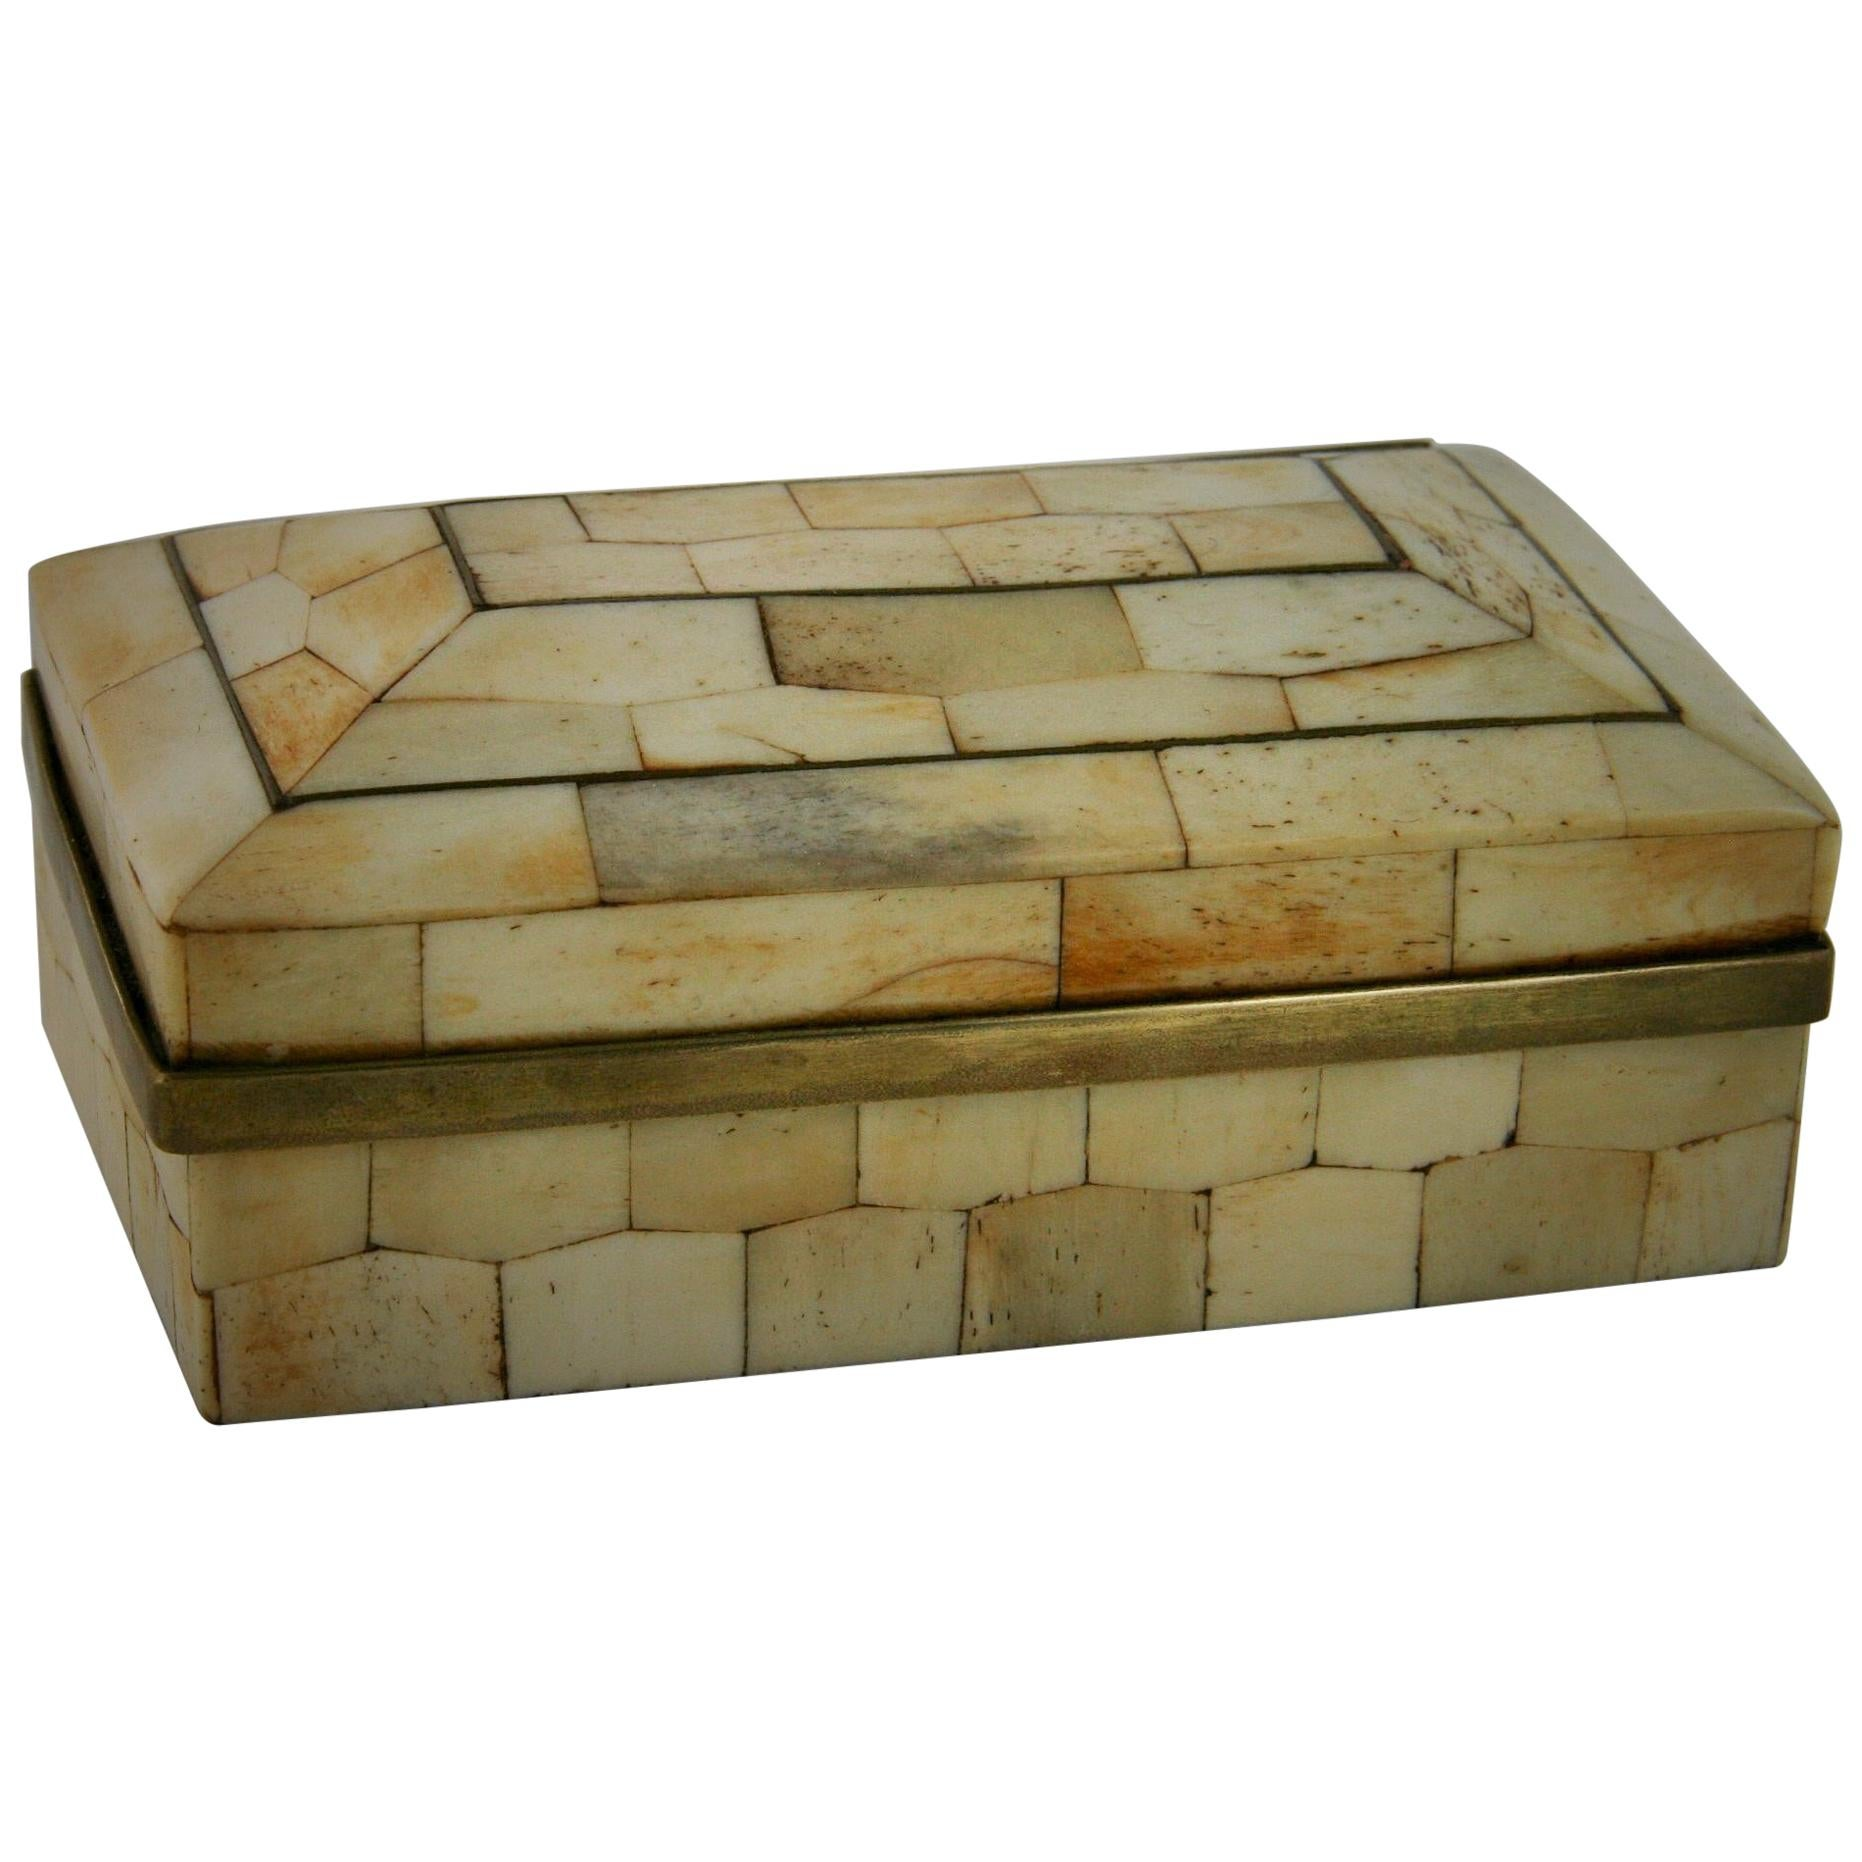 Midcentury Domed Top Stone and Brass Tessellated Decorative Box